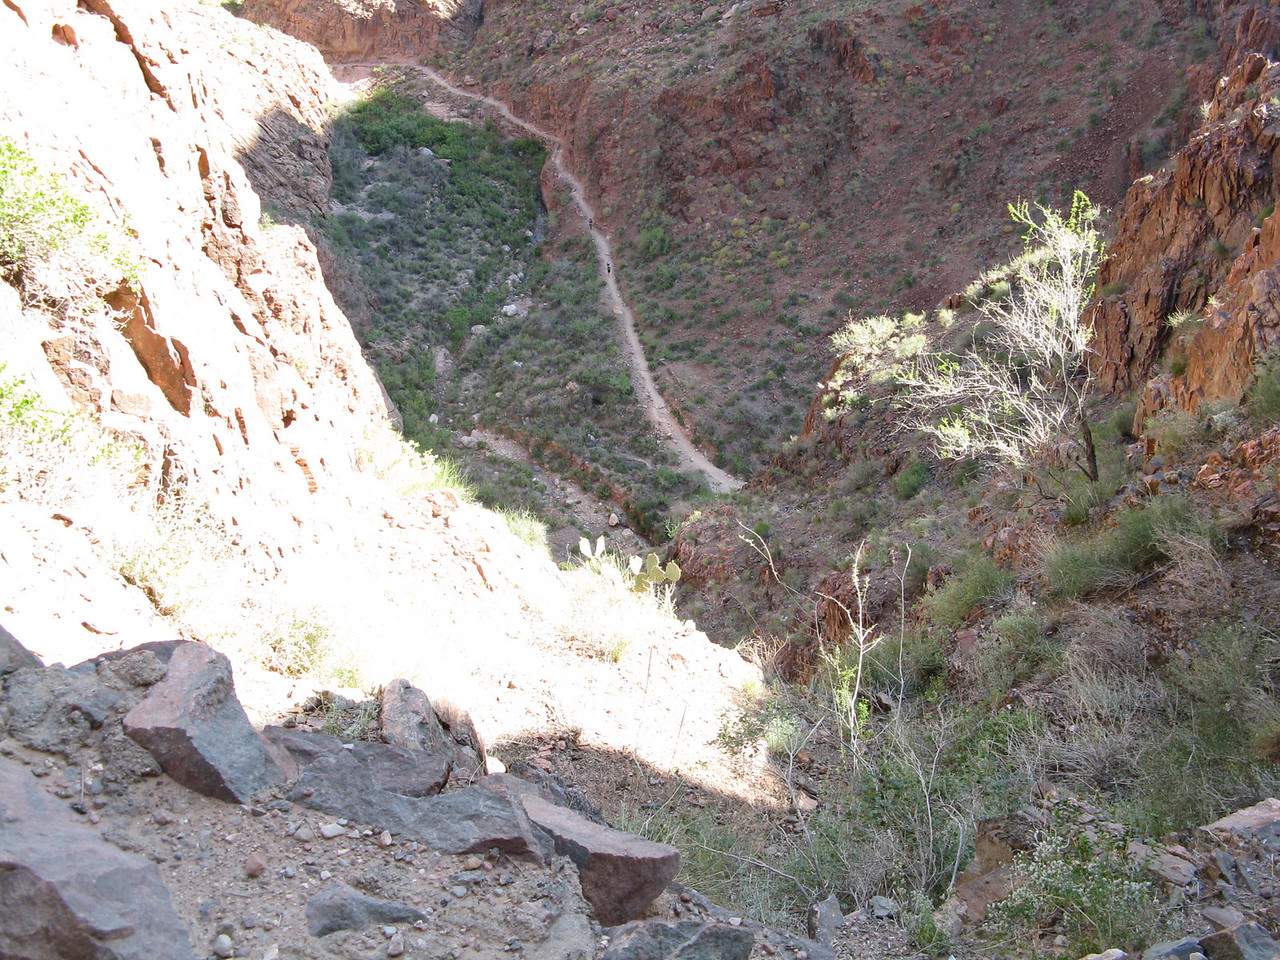 Looking down at the trail on the bottom of Pipe Creek canyon.